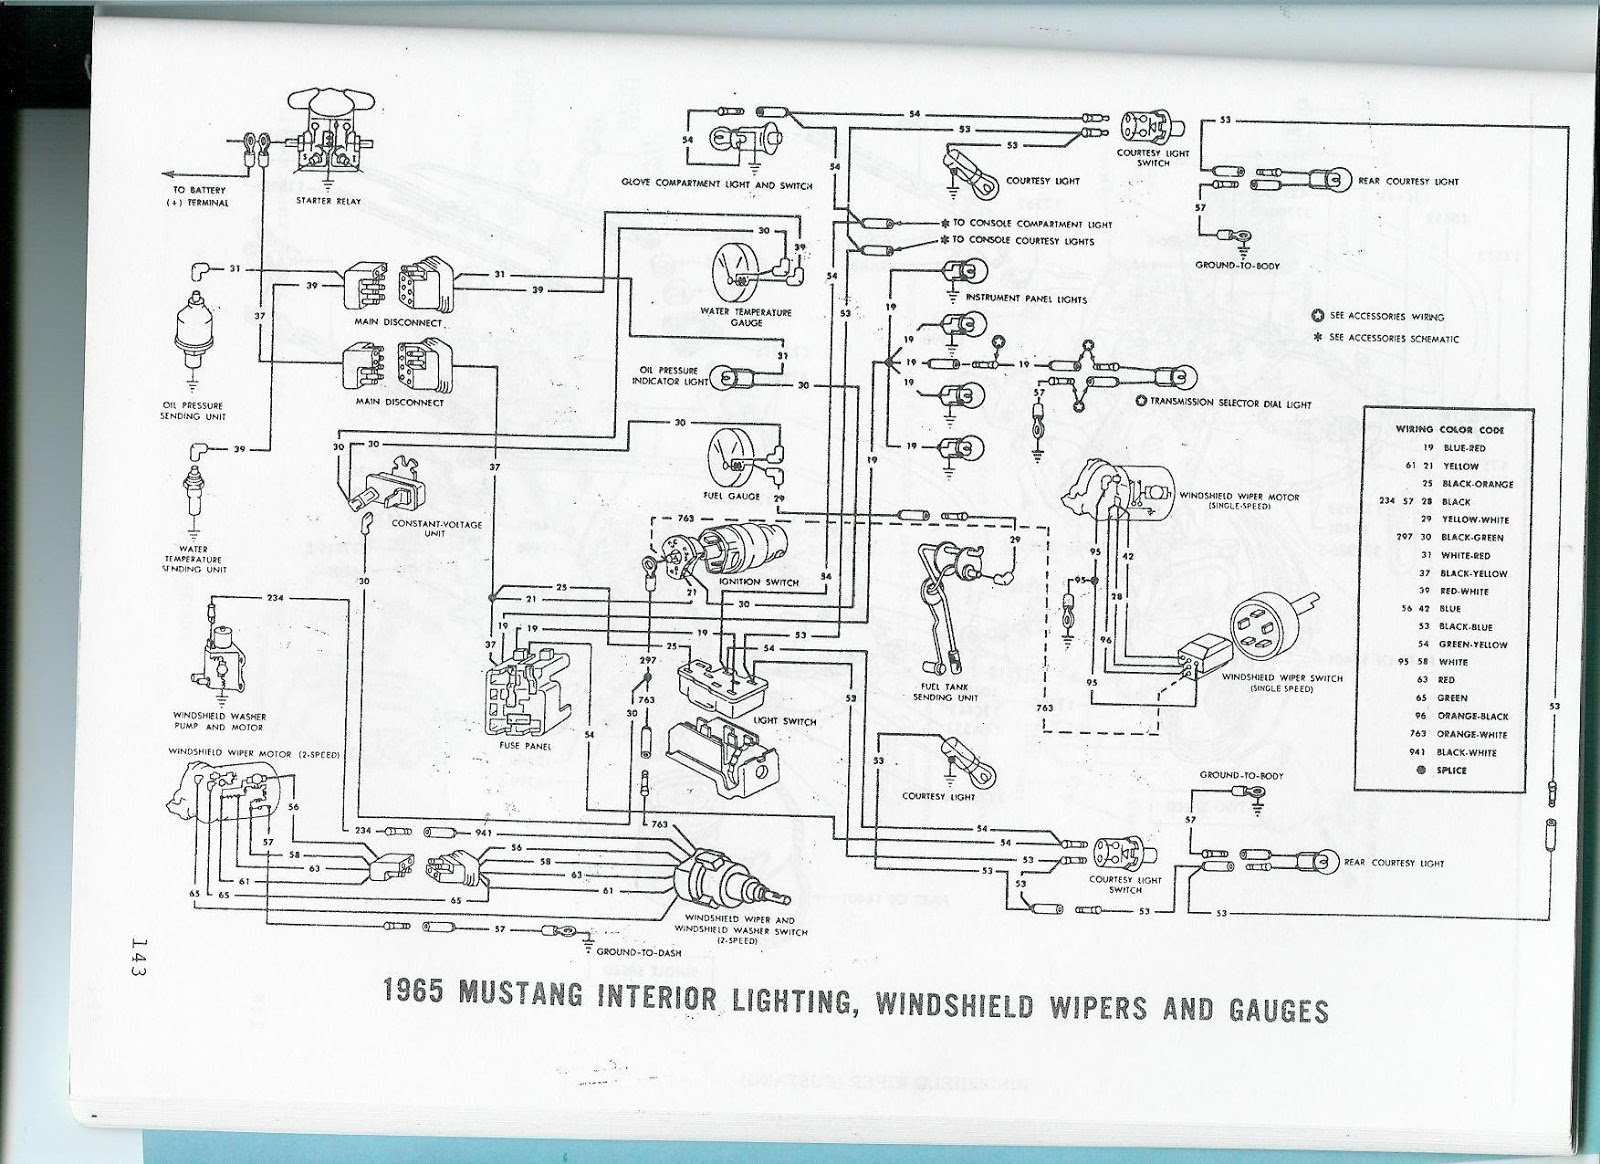 hight resolution of 65 mustang engine wiring harness wiring diagram forward 65 mustang painless wiring harness 1965 mustang engine